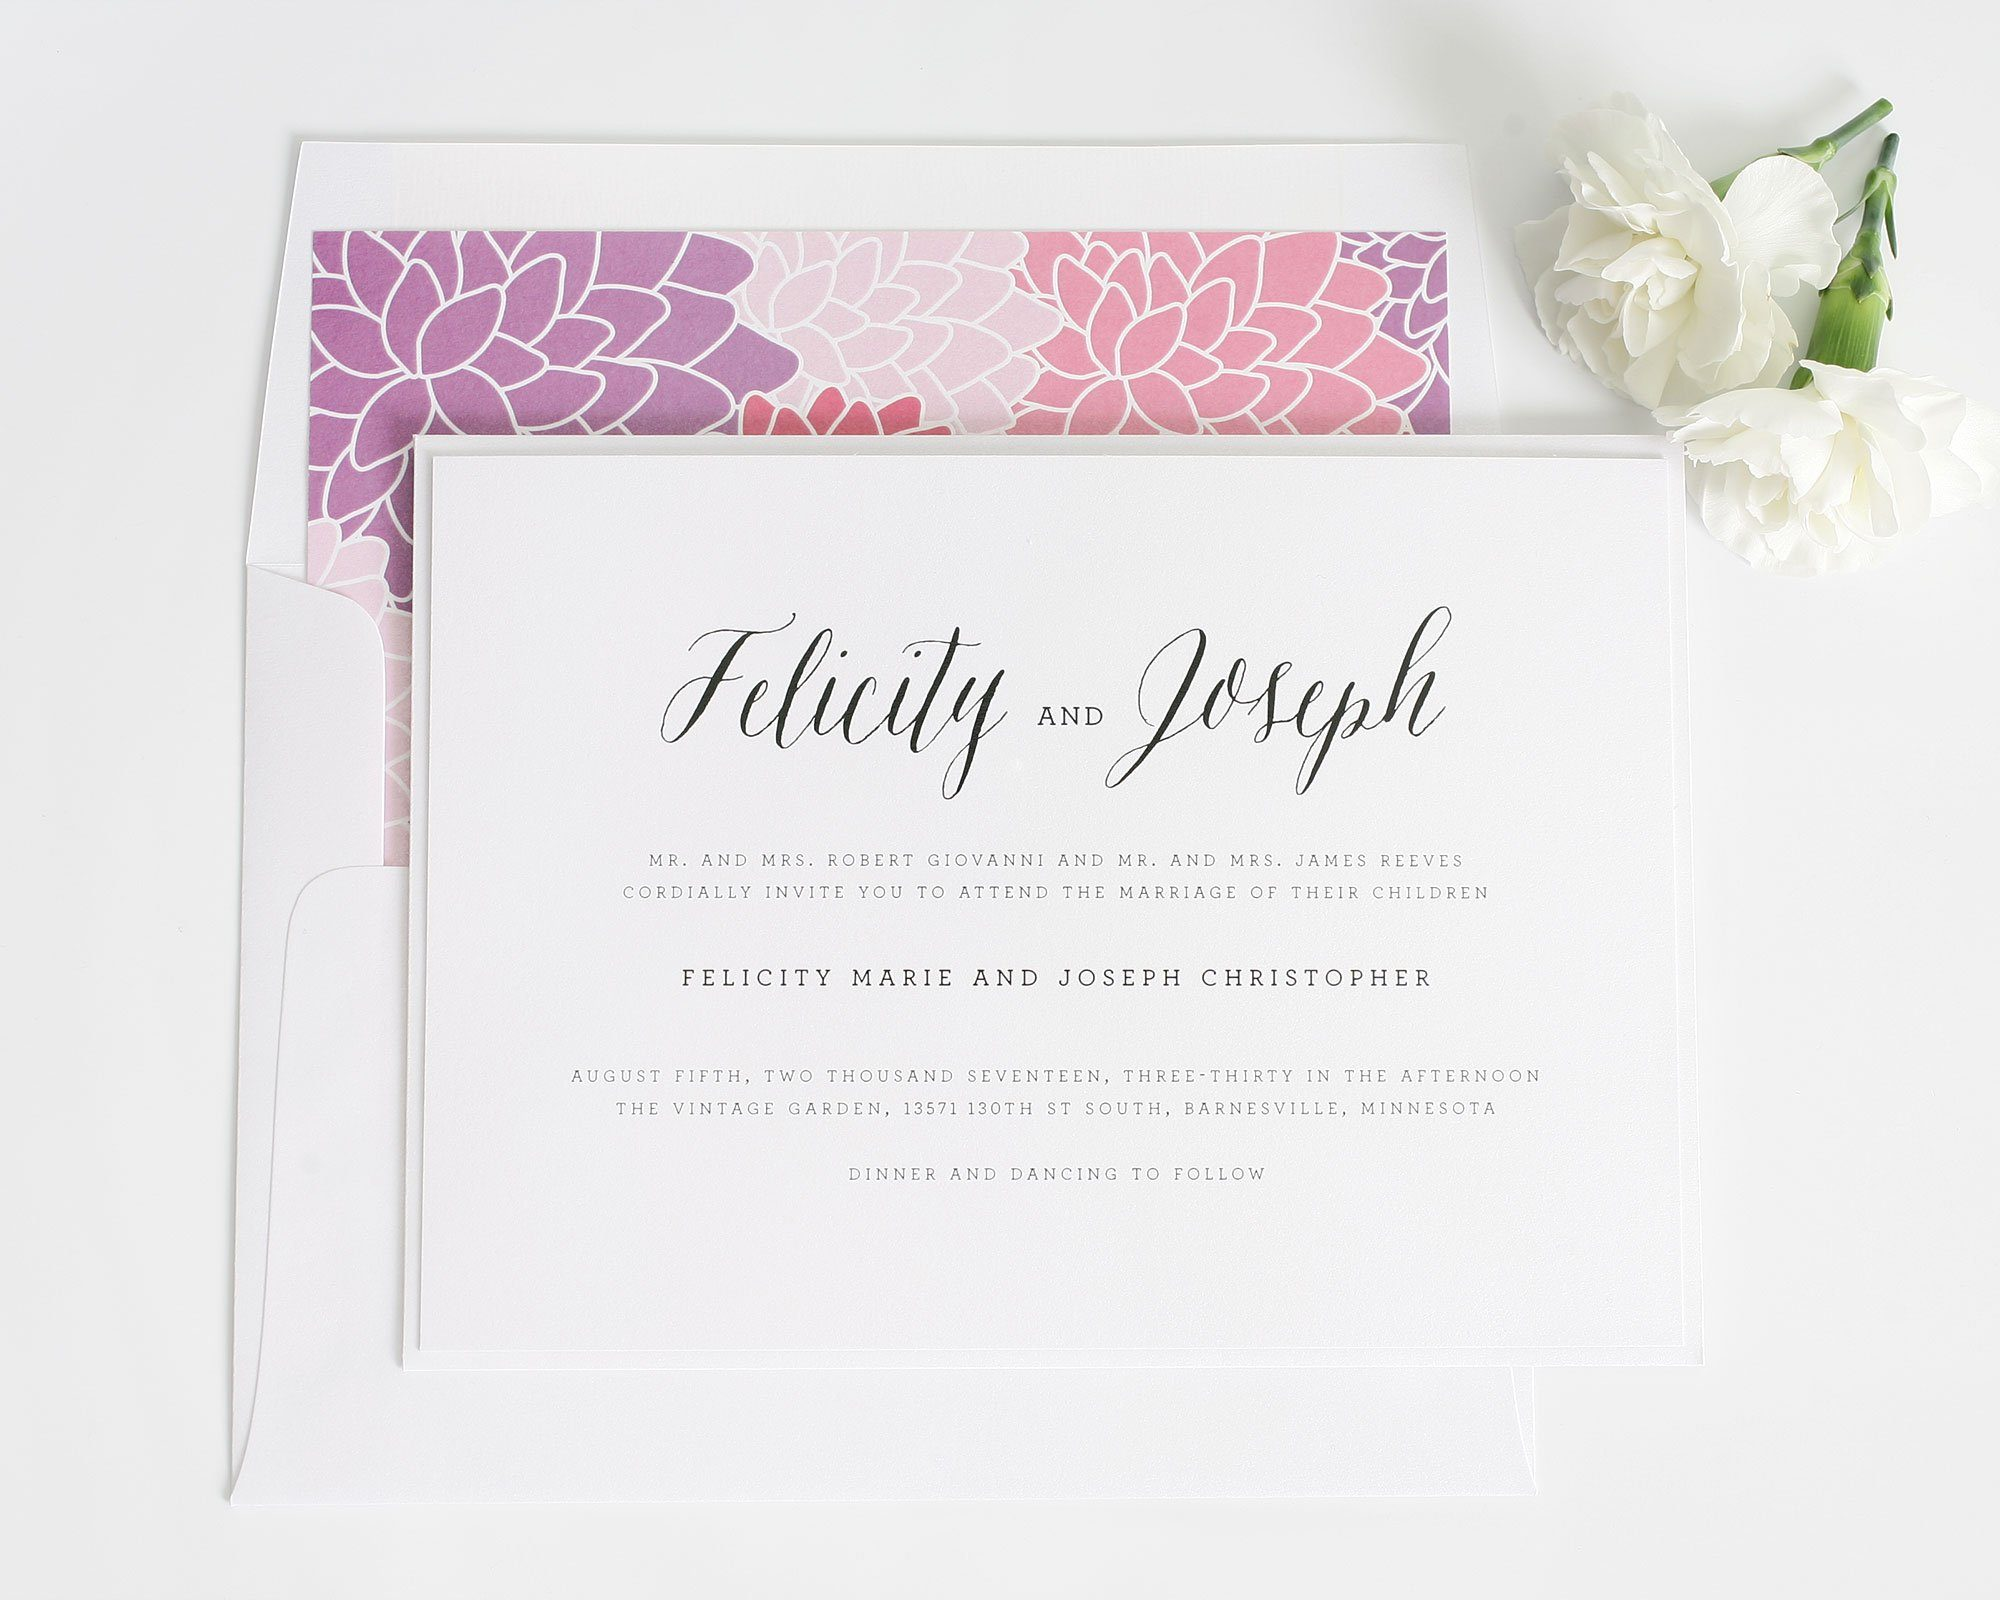 Rustic Wedding Invitations with Floral Accents